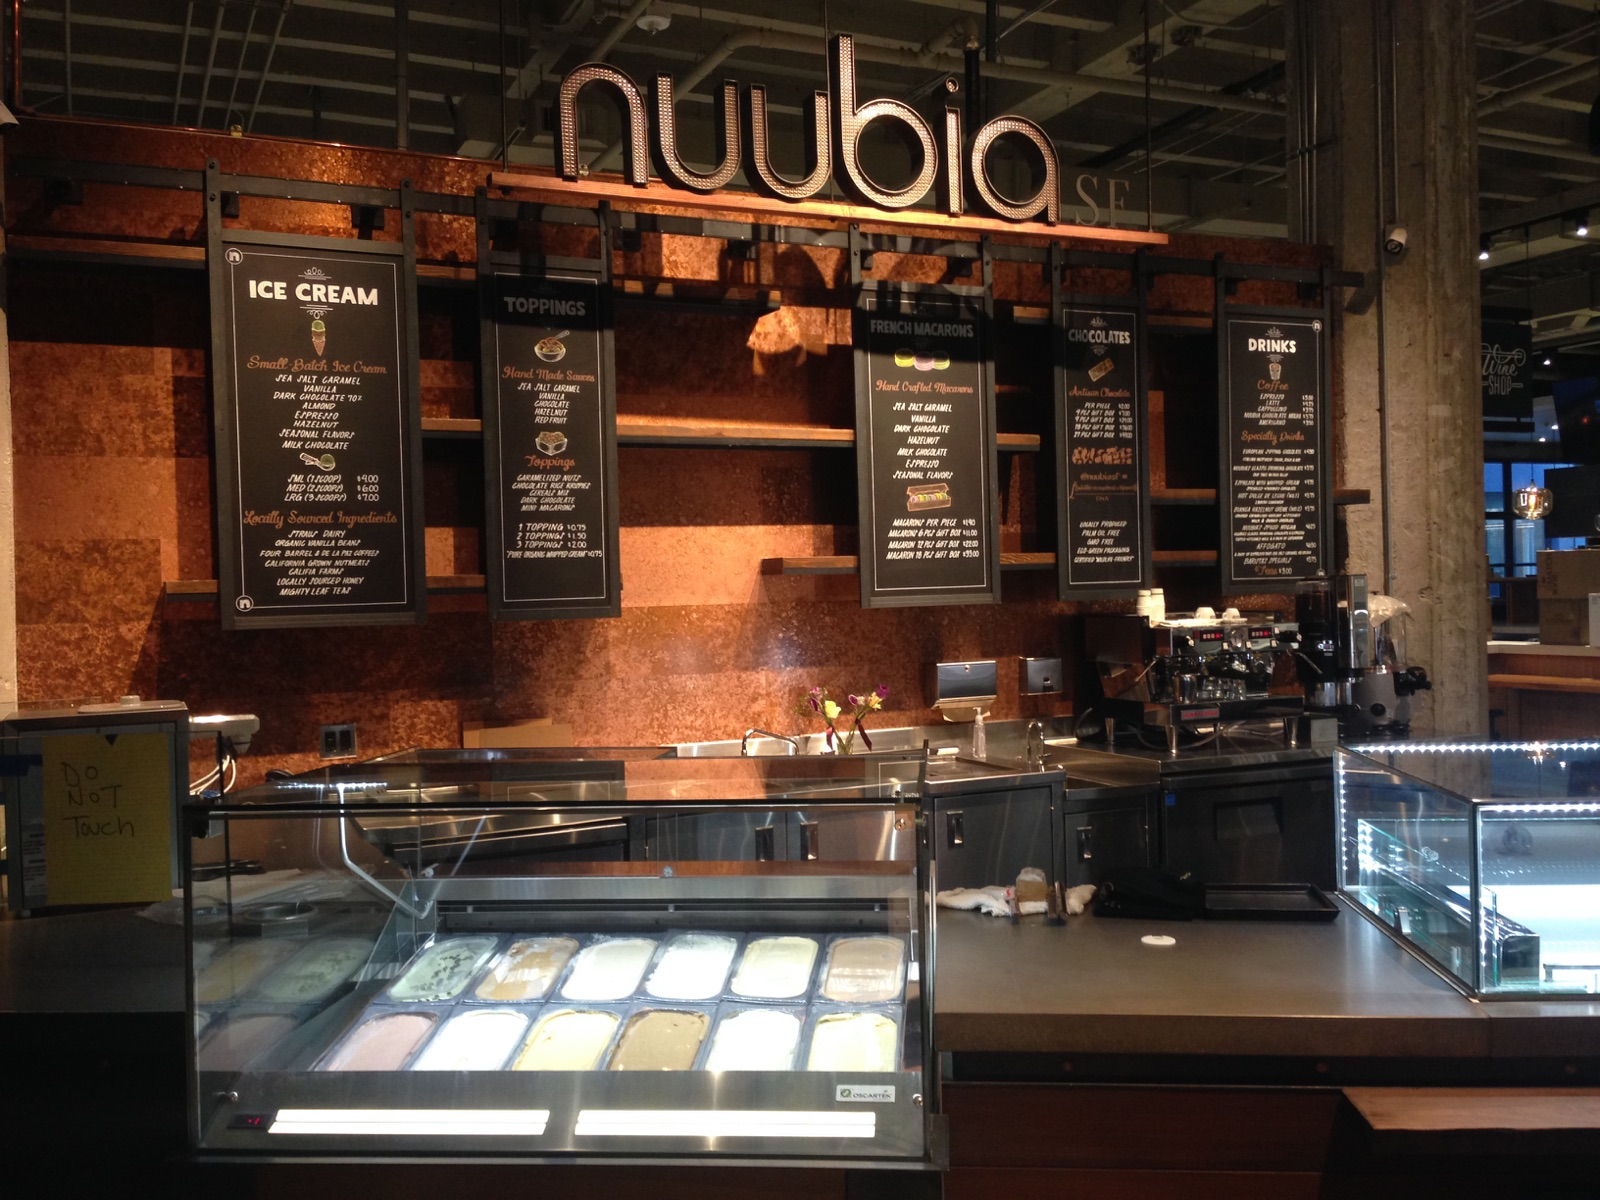 Nuubia SF Menu Chalkboards